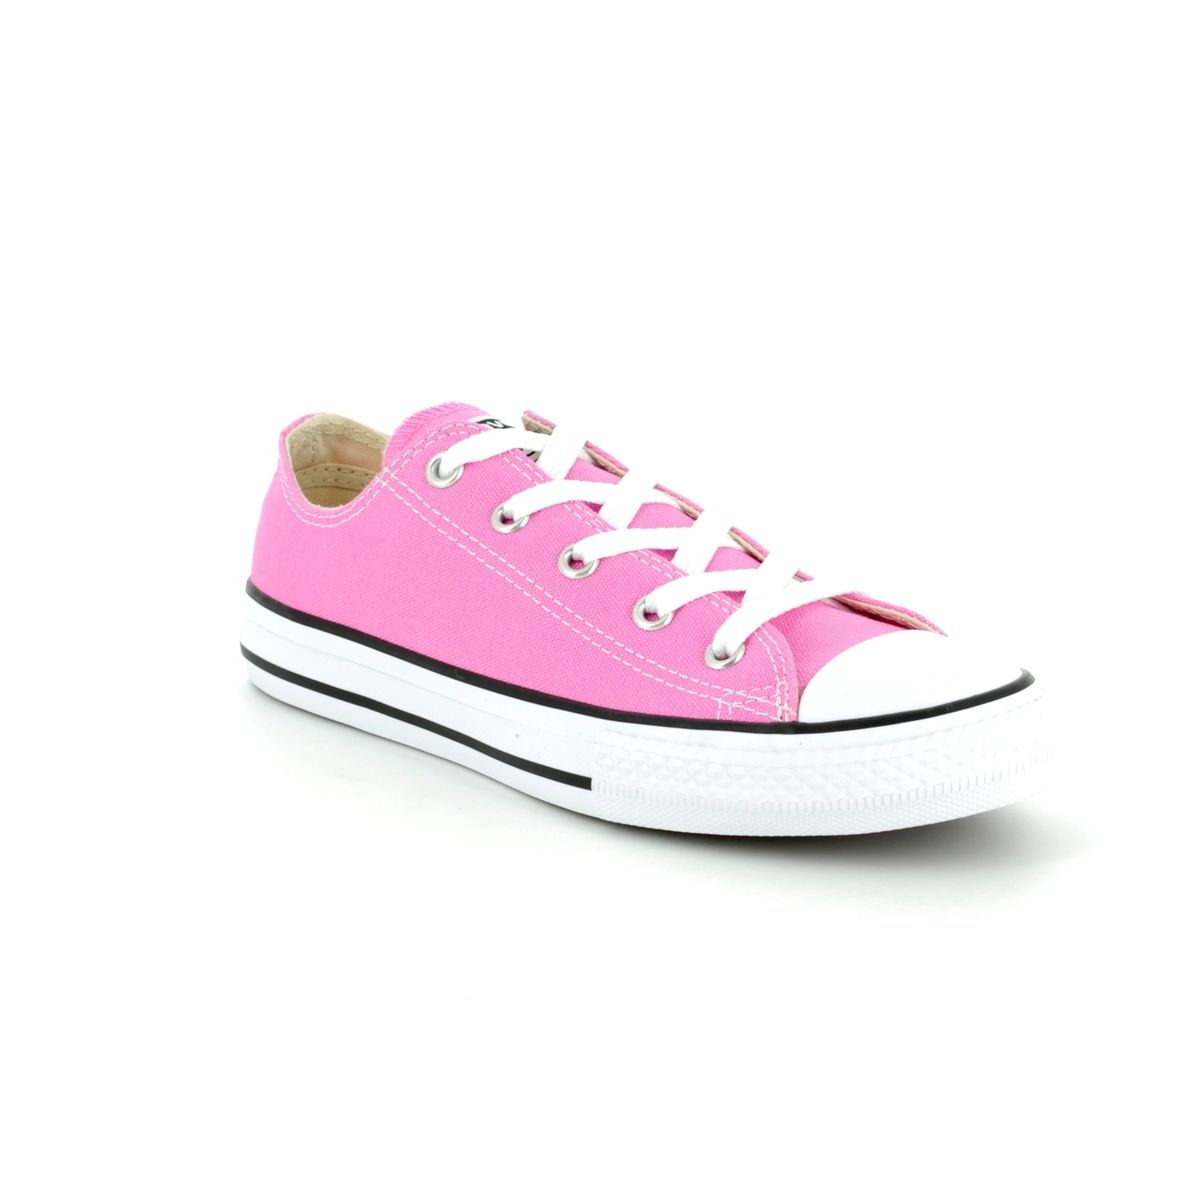 Beautiful pink weekend bag by Converse All Star